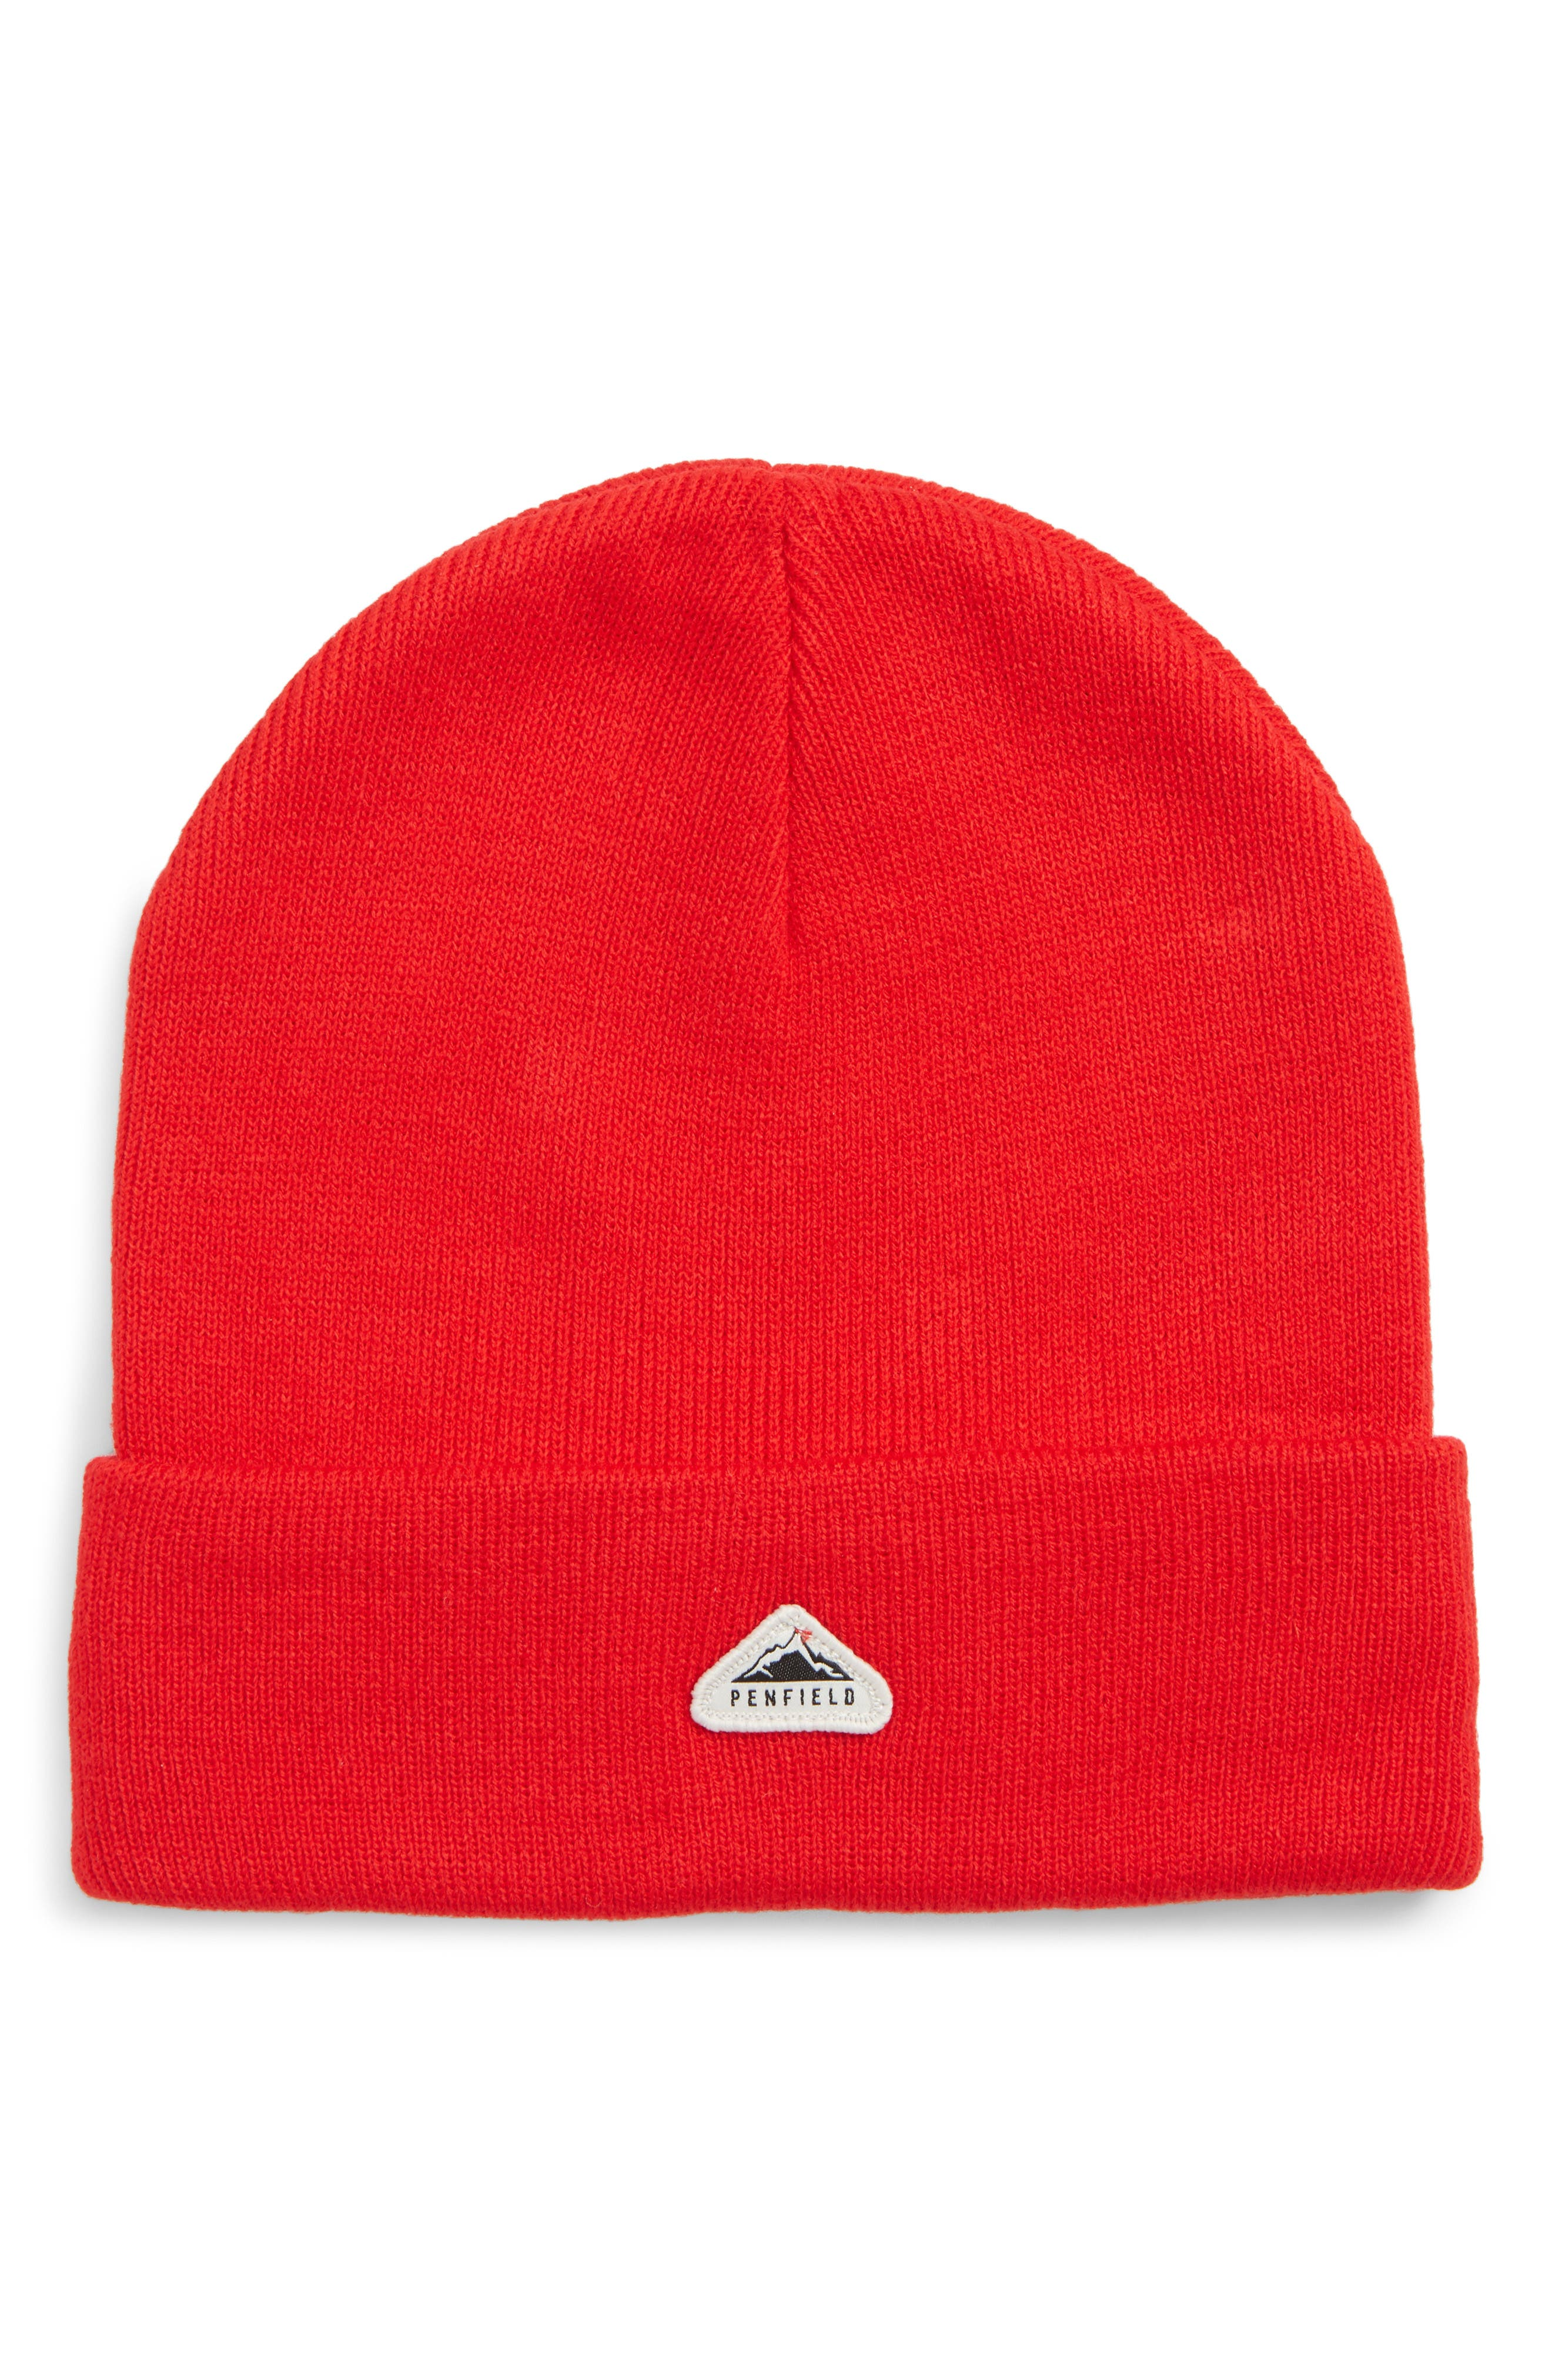 PENFIELD Classic Beanie Hat - Red